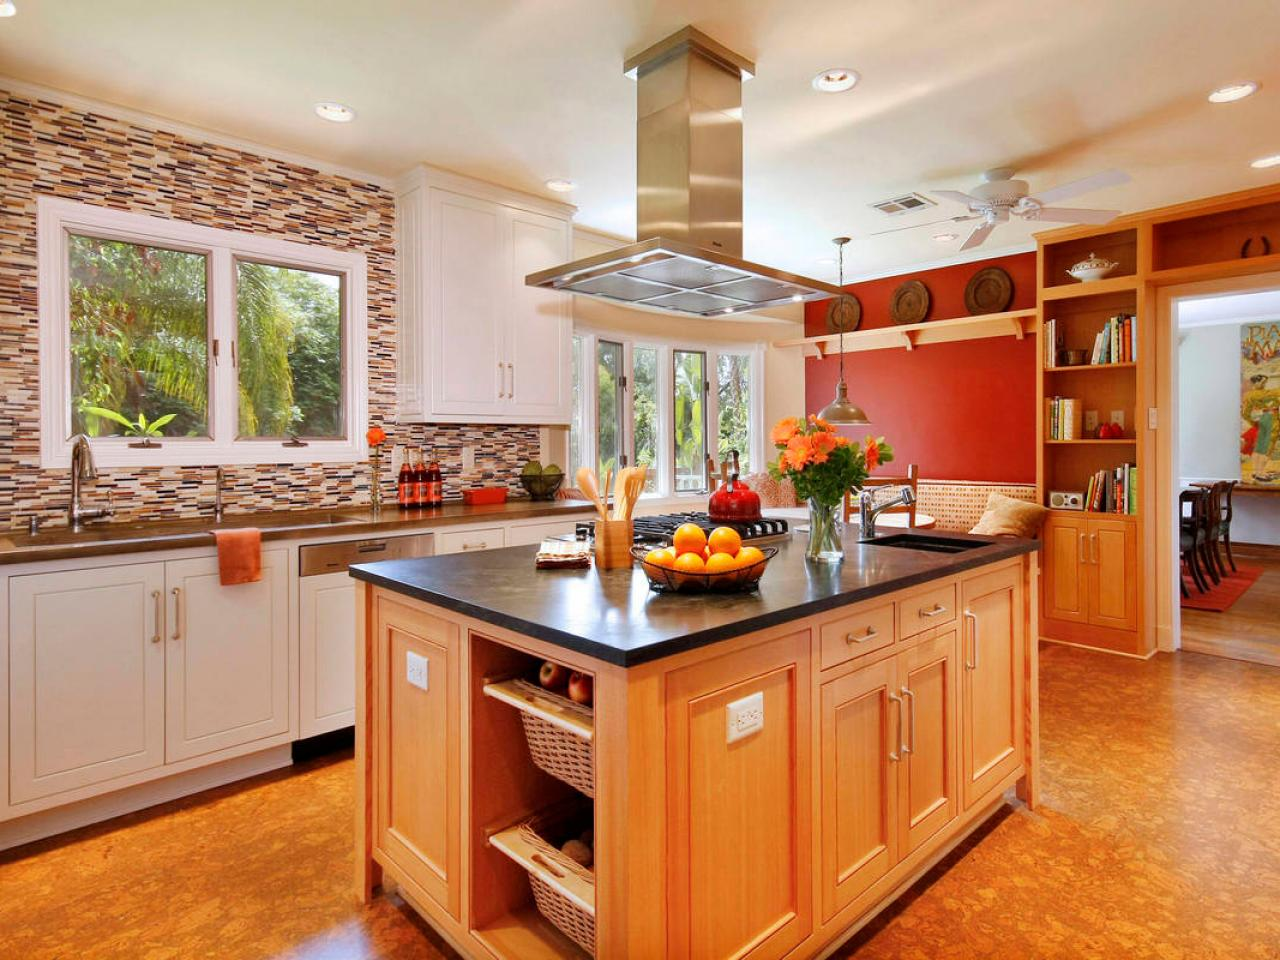 craftsman kitchen with large island and red accent wall this kitchen